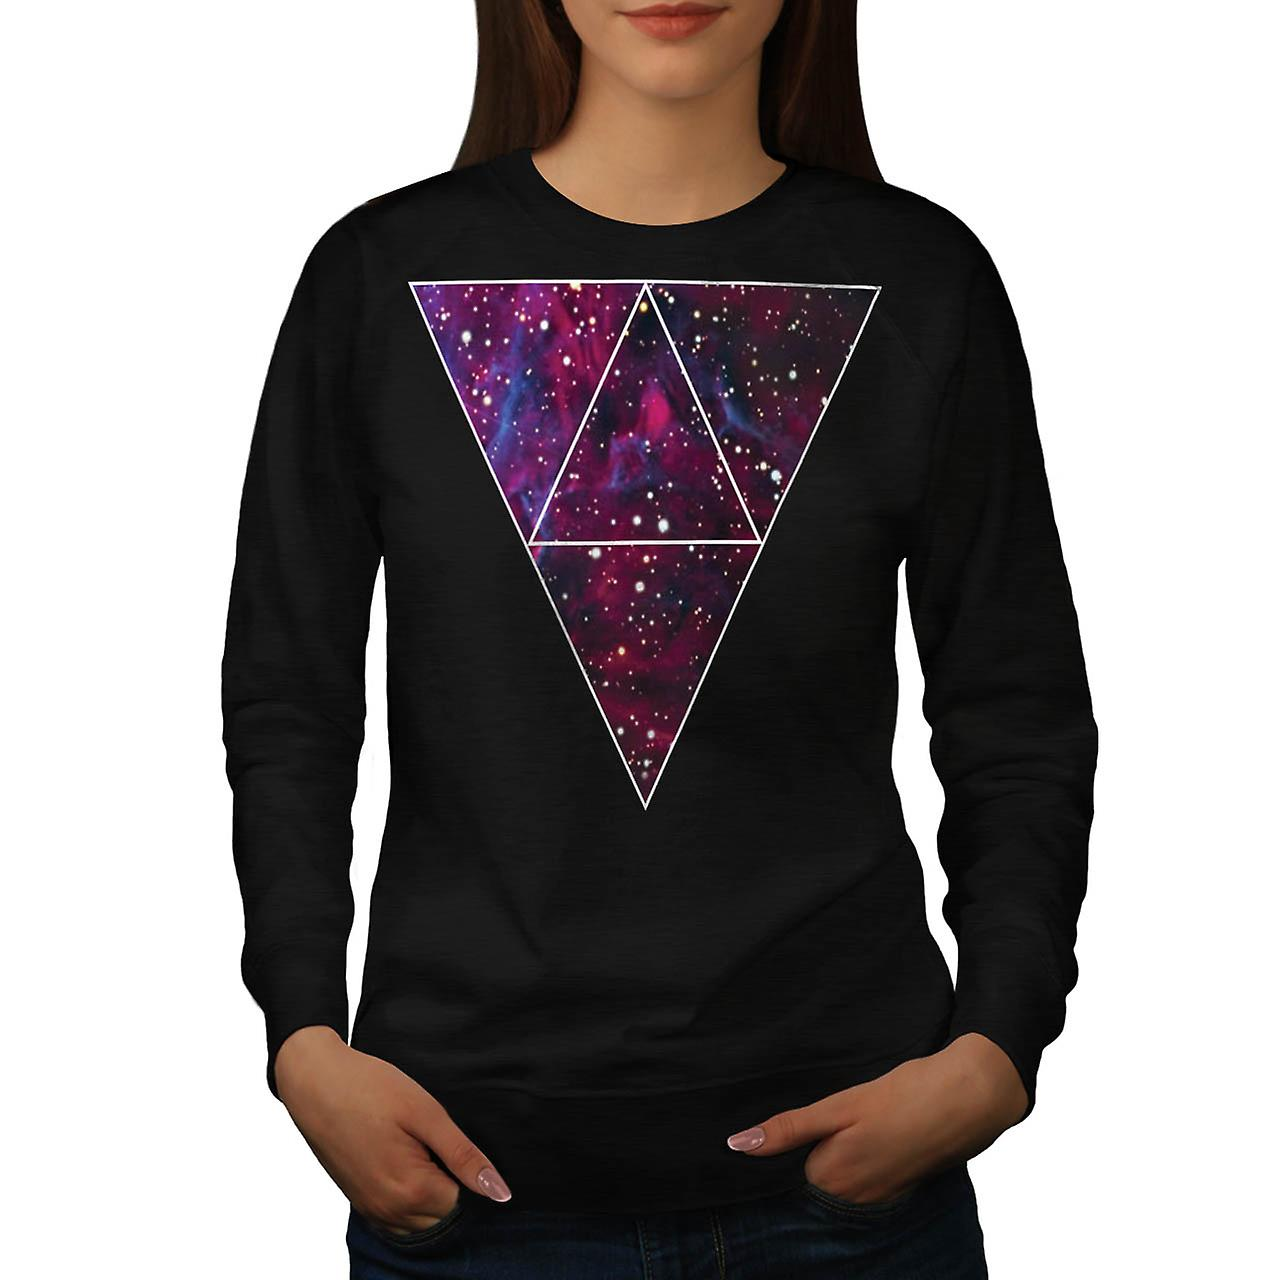 Universe Of Triangles Space Life Women Black Sweatshirt | Wellcoda